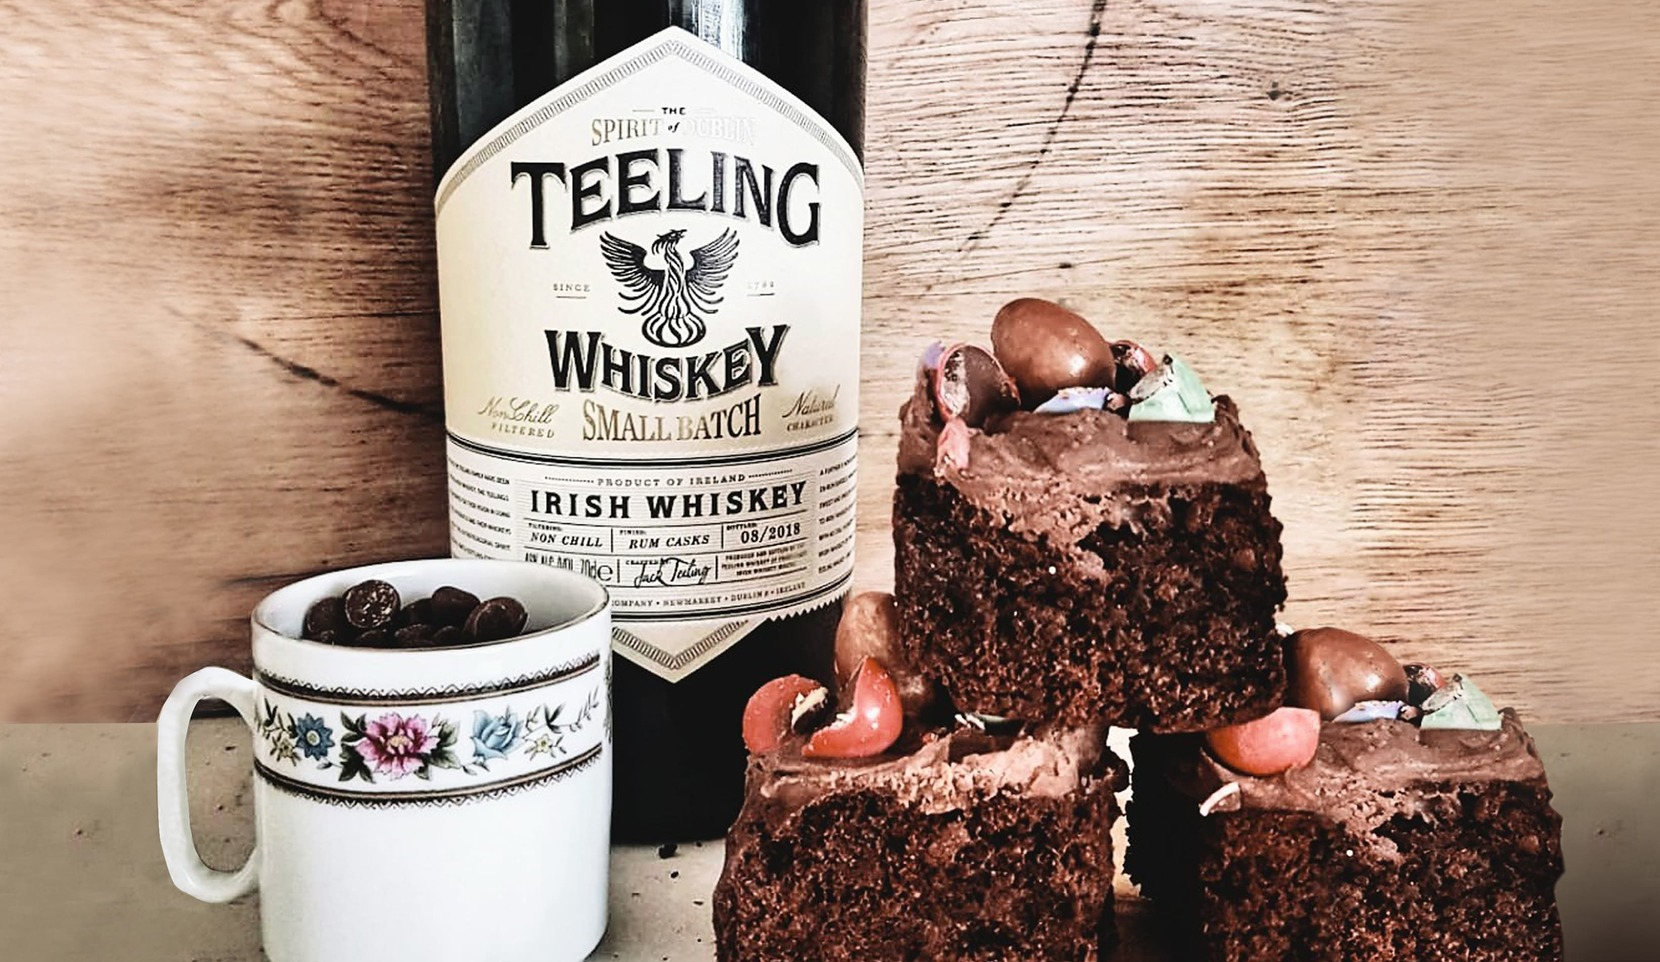 Teeling Chocolate Brownies Recipe!